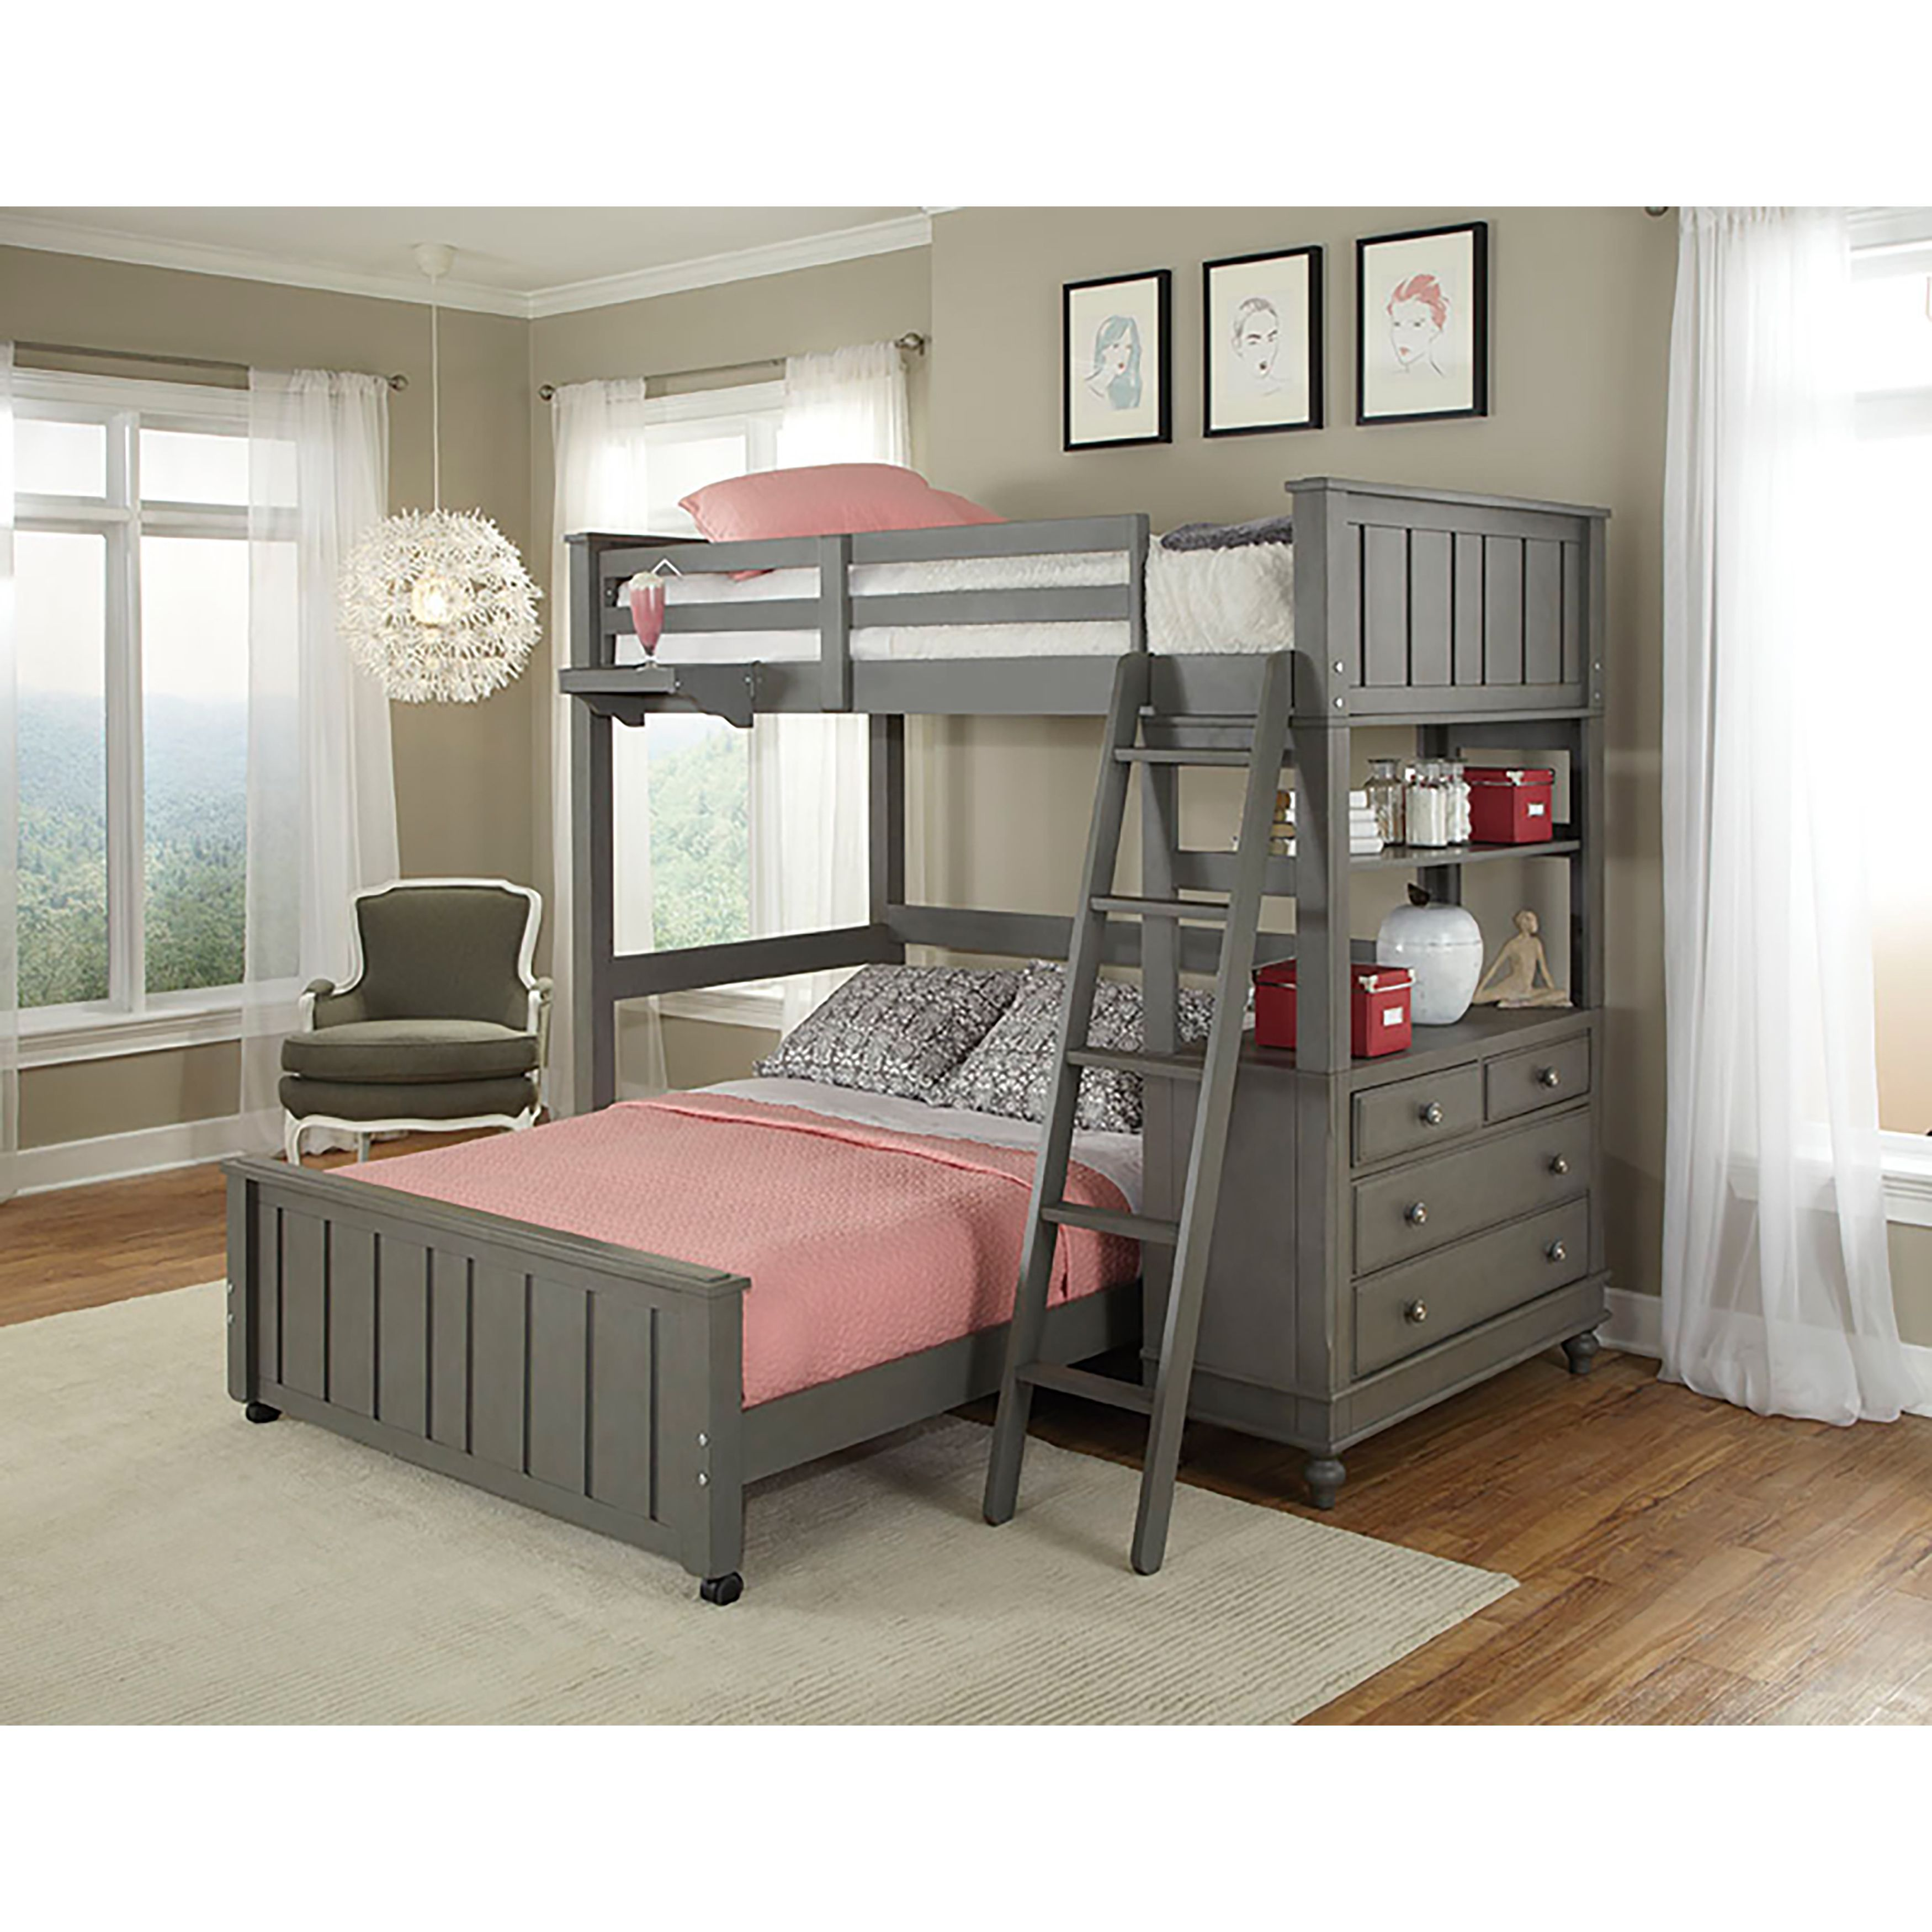 Ne Kids Lake House Stone Full Loft Bunk Bed With Full Lower Bed  # Muebles Full House Colombia